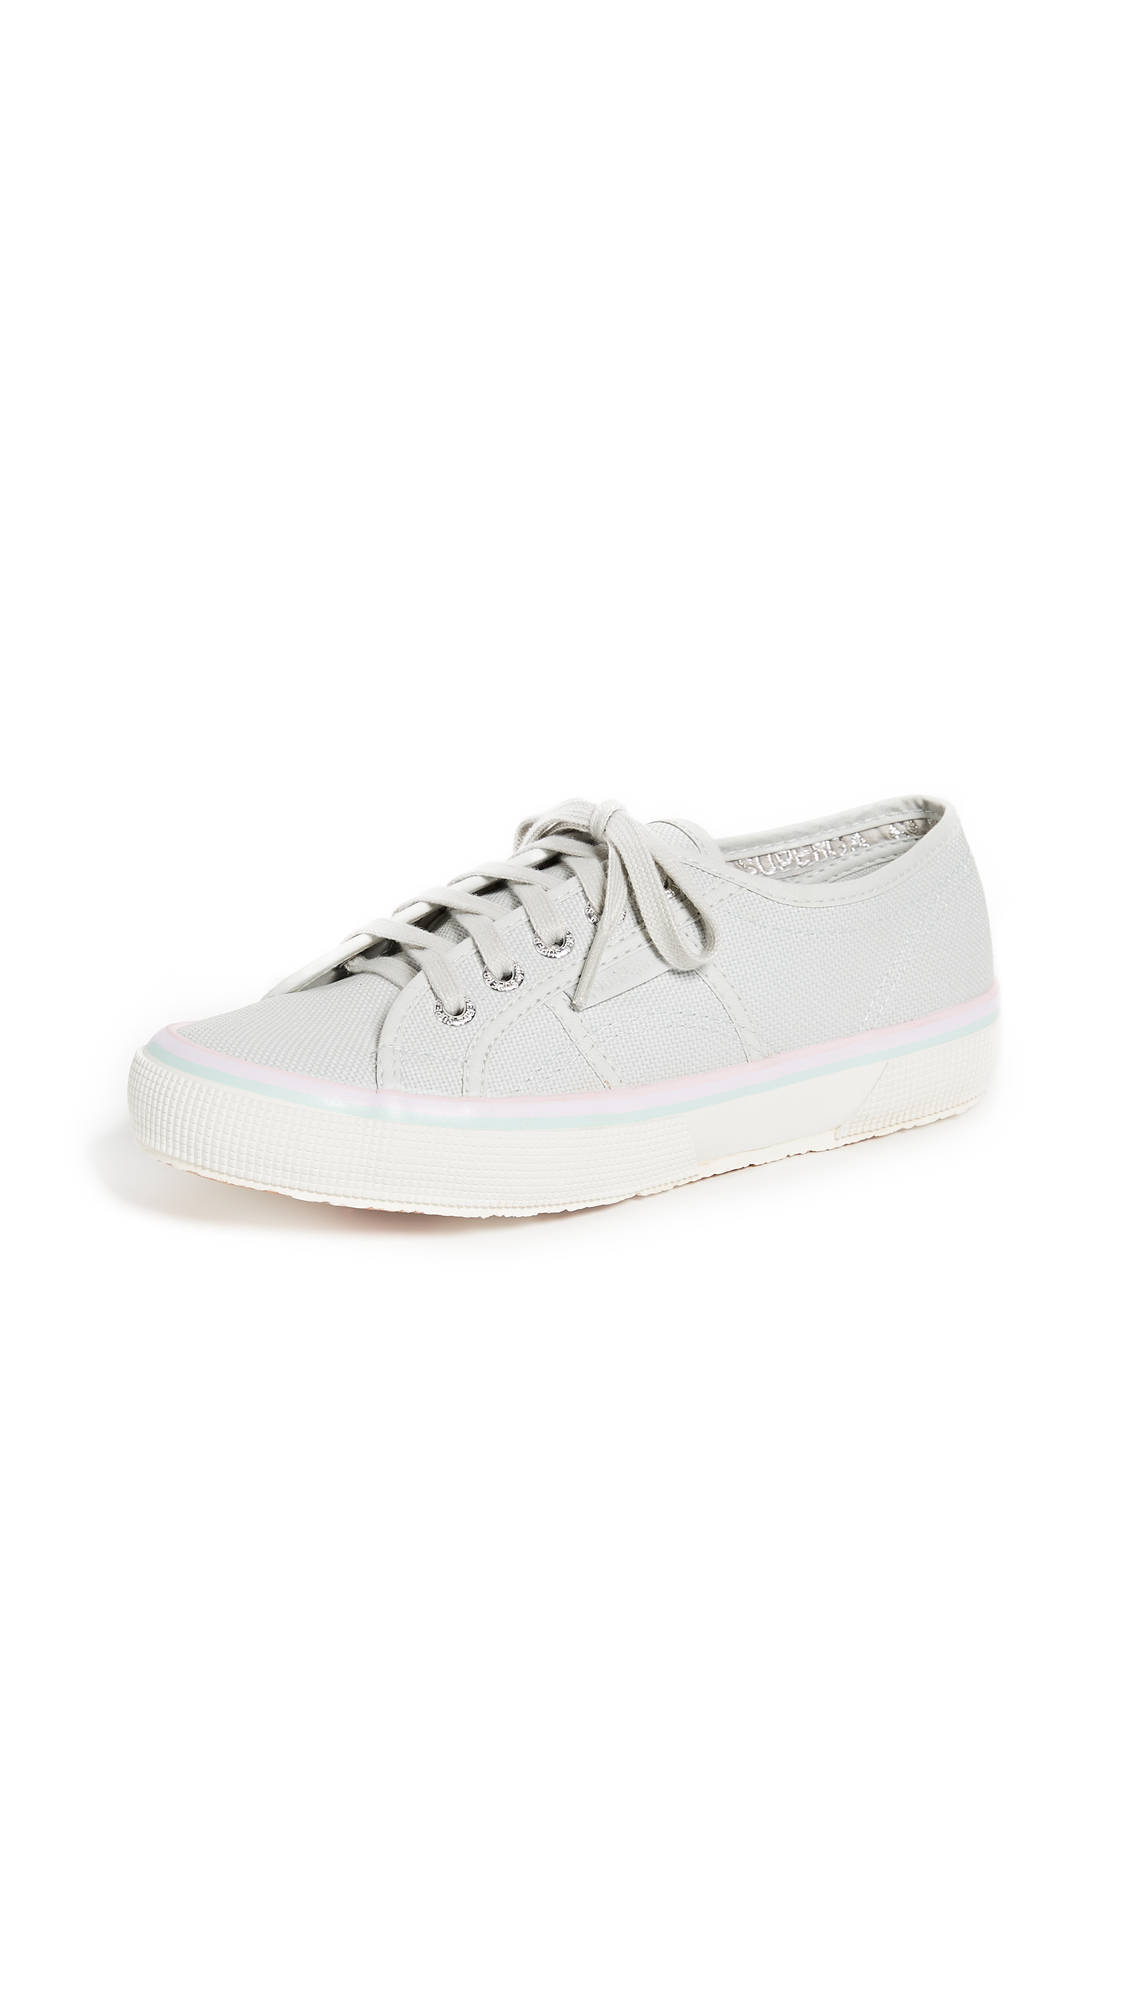 Superga 2750 Cotu Multi Stripe Sneakers - Aluminum